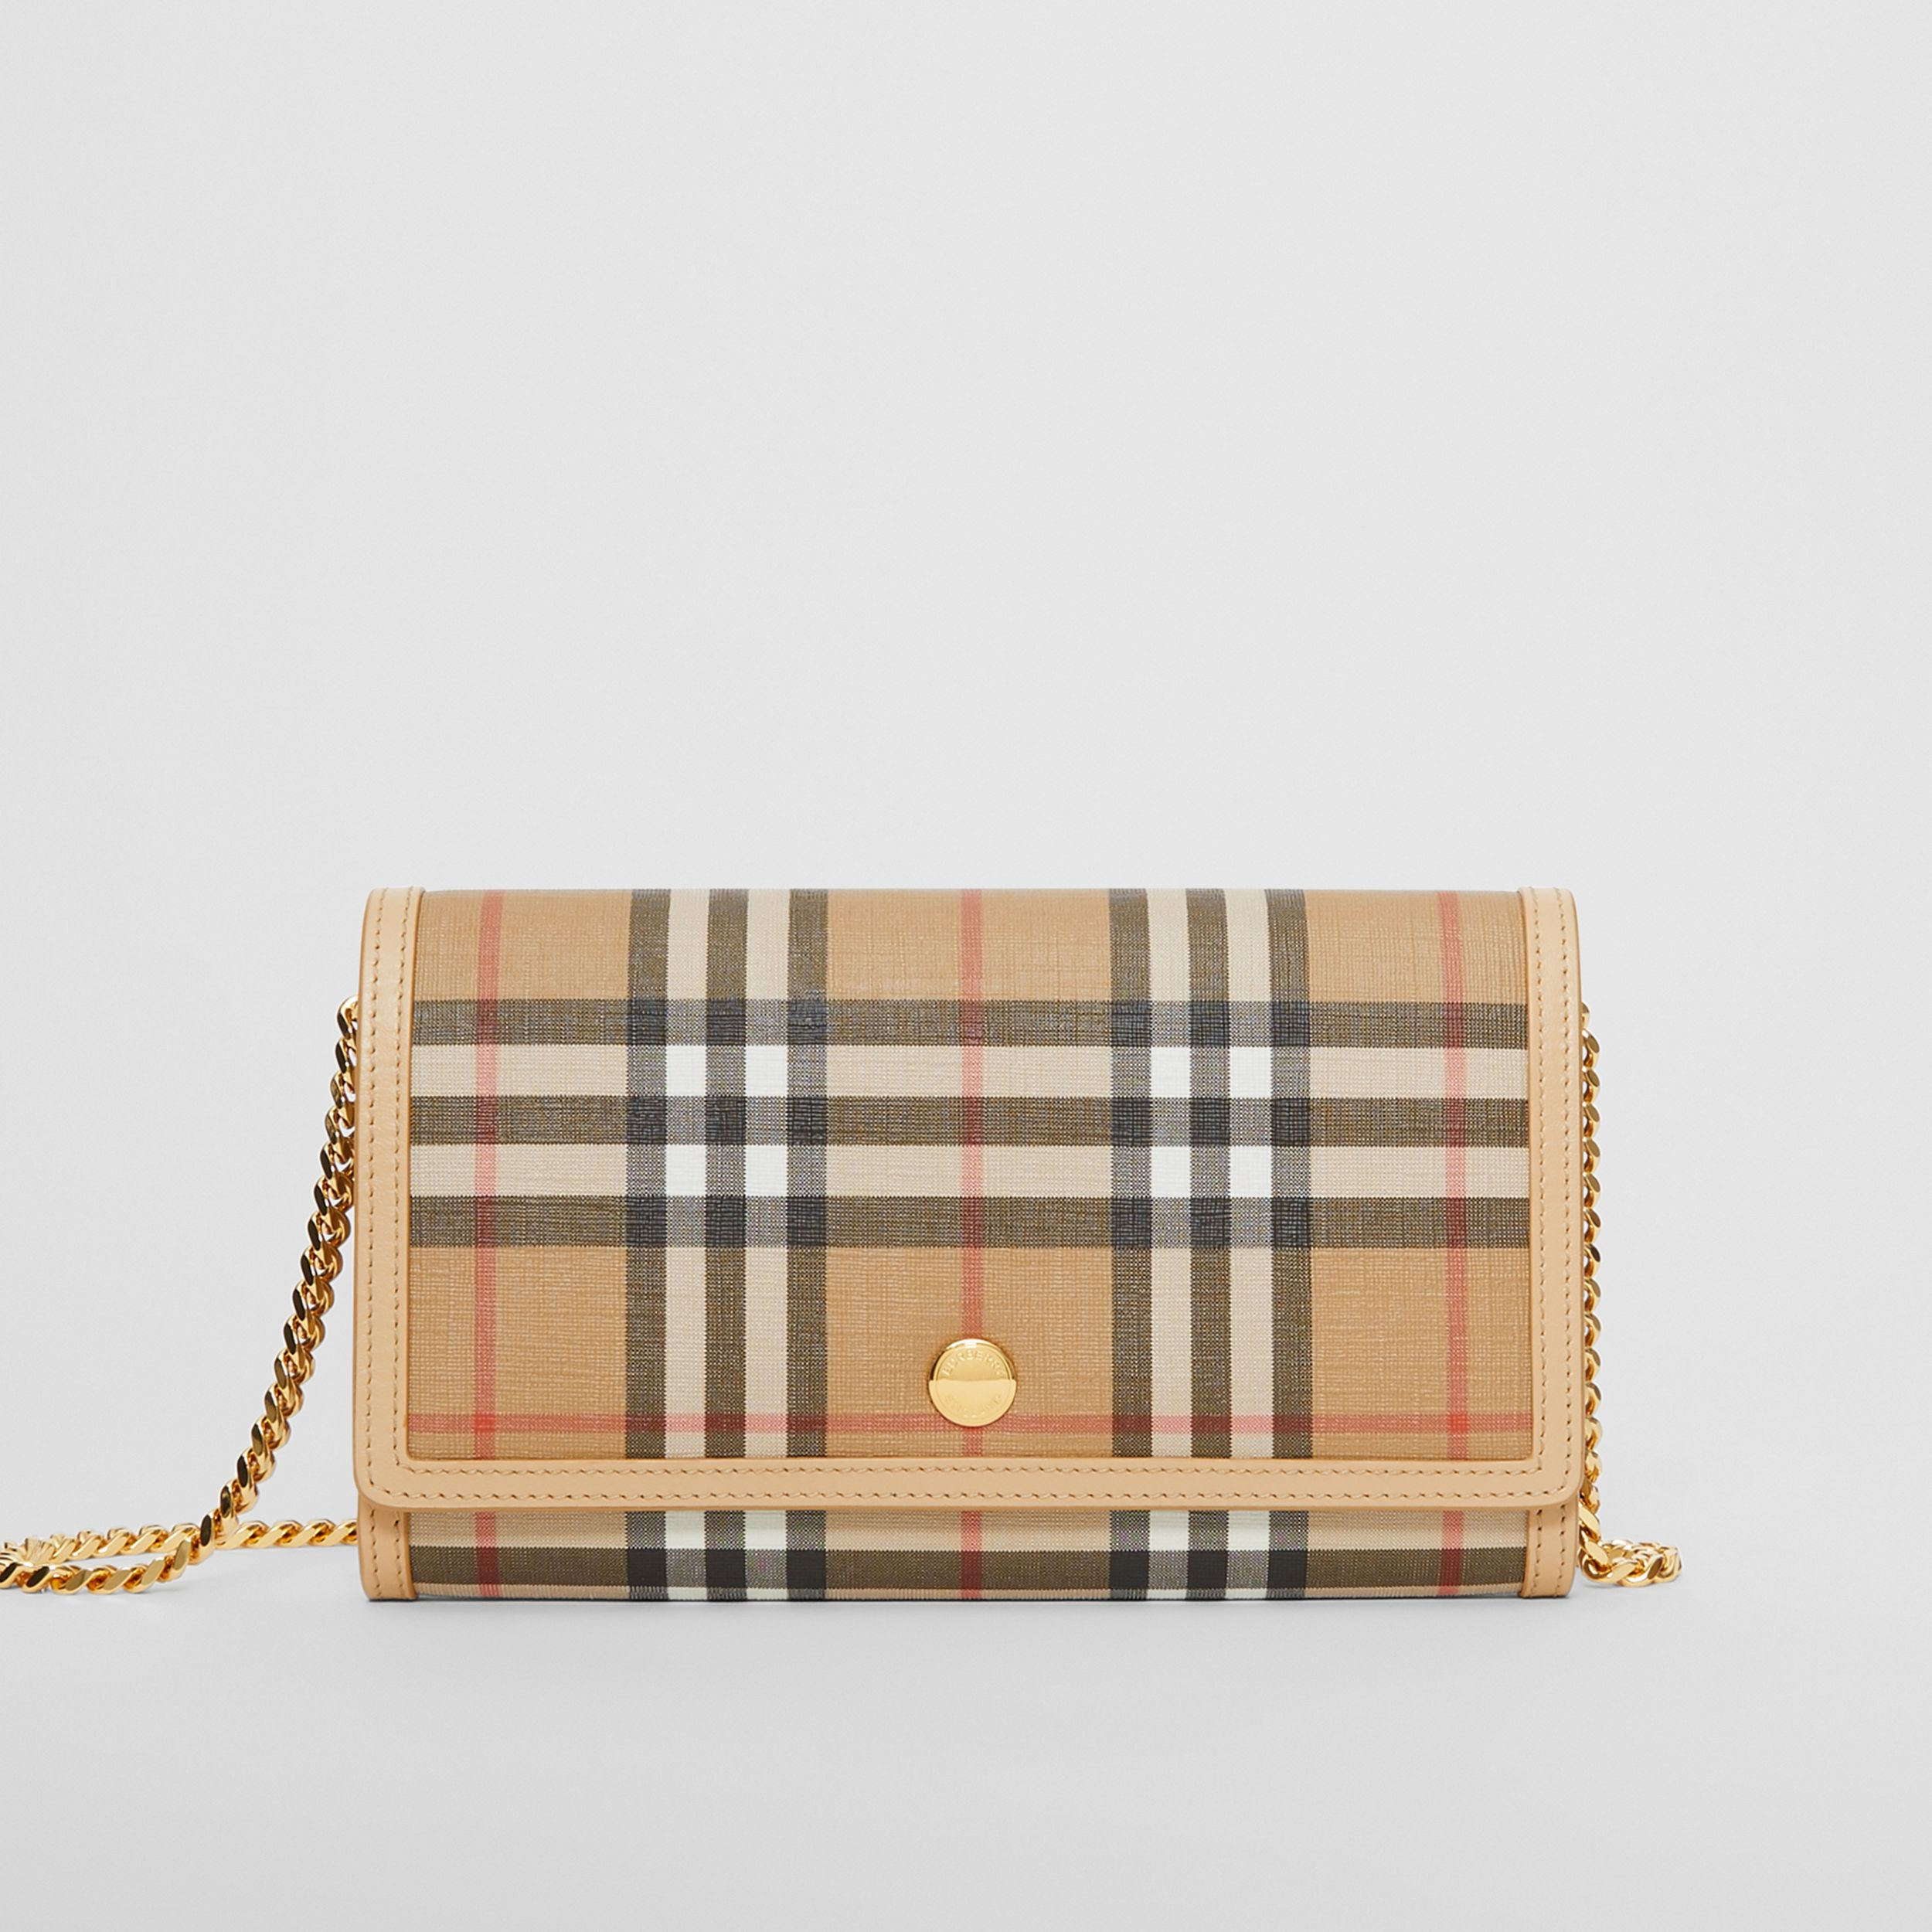 Vintage Check E-canvas Wallet with Detachable Strap in Beige - Women | Burberry United Kingdom - 1